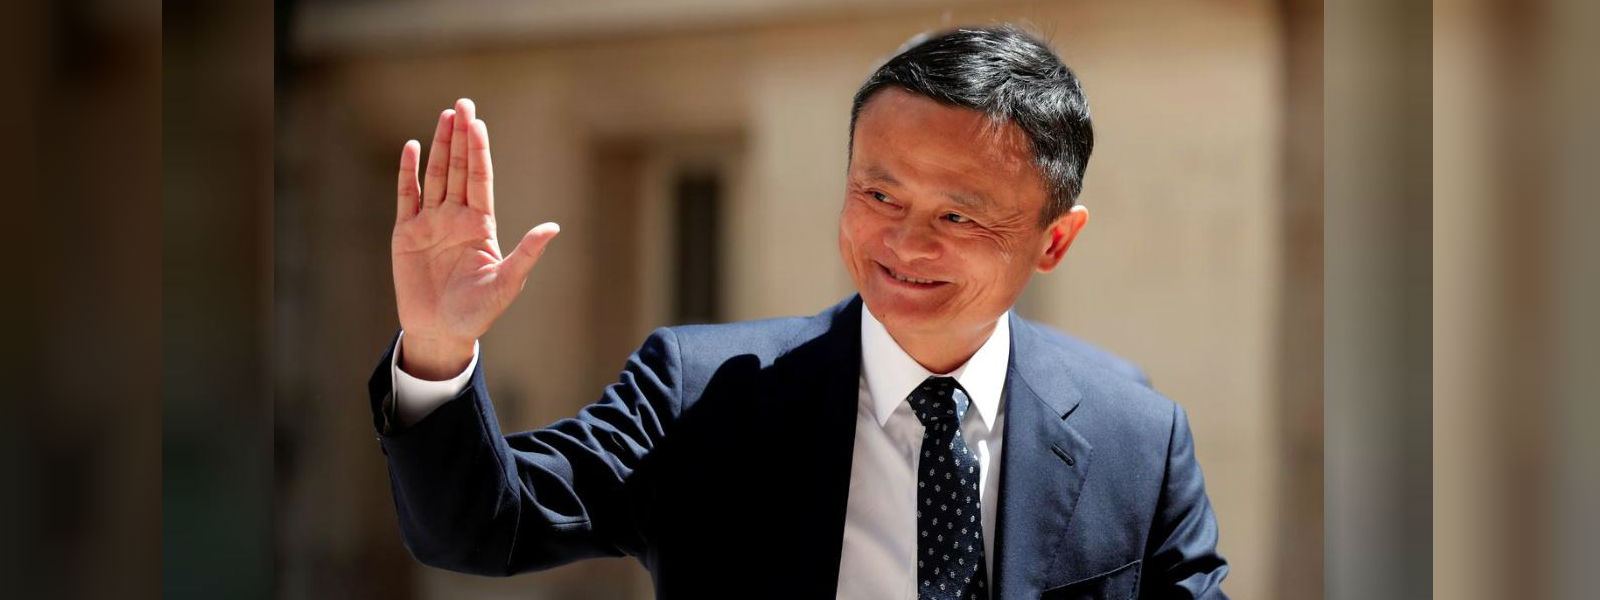 Alibaba set for 'big challenge' as flamboyant chairman Ma departs